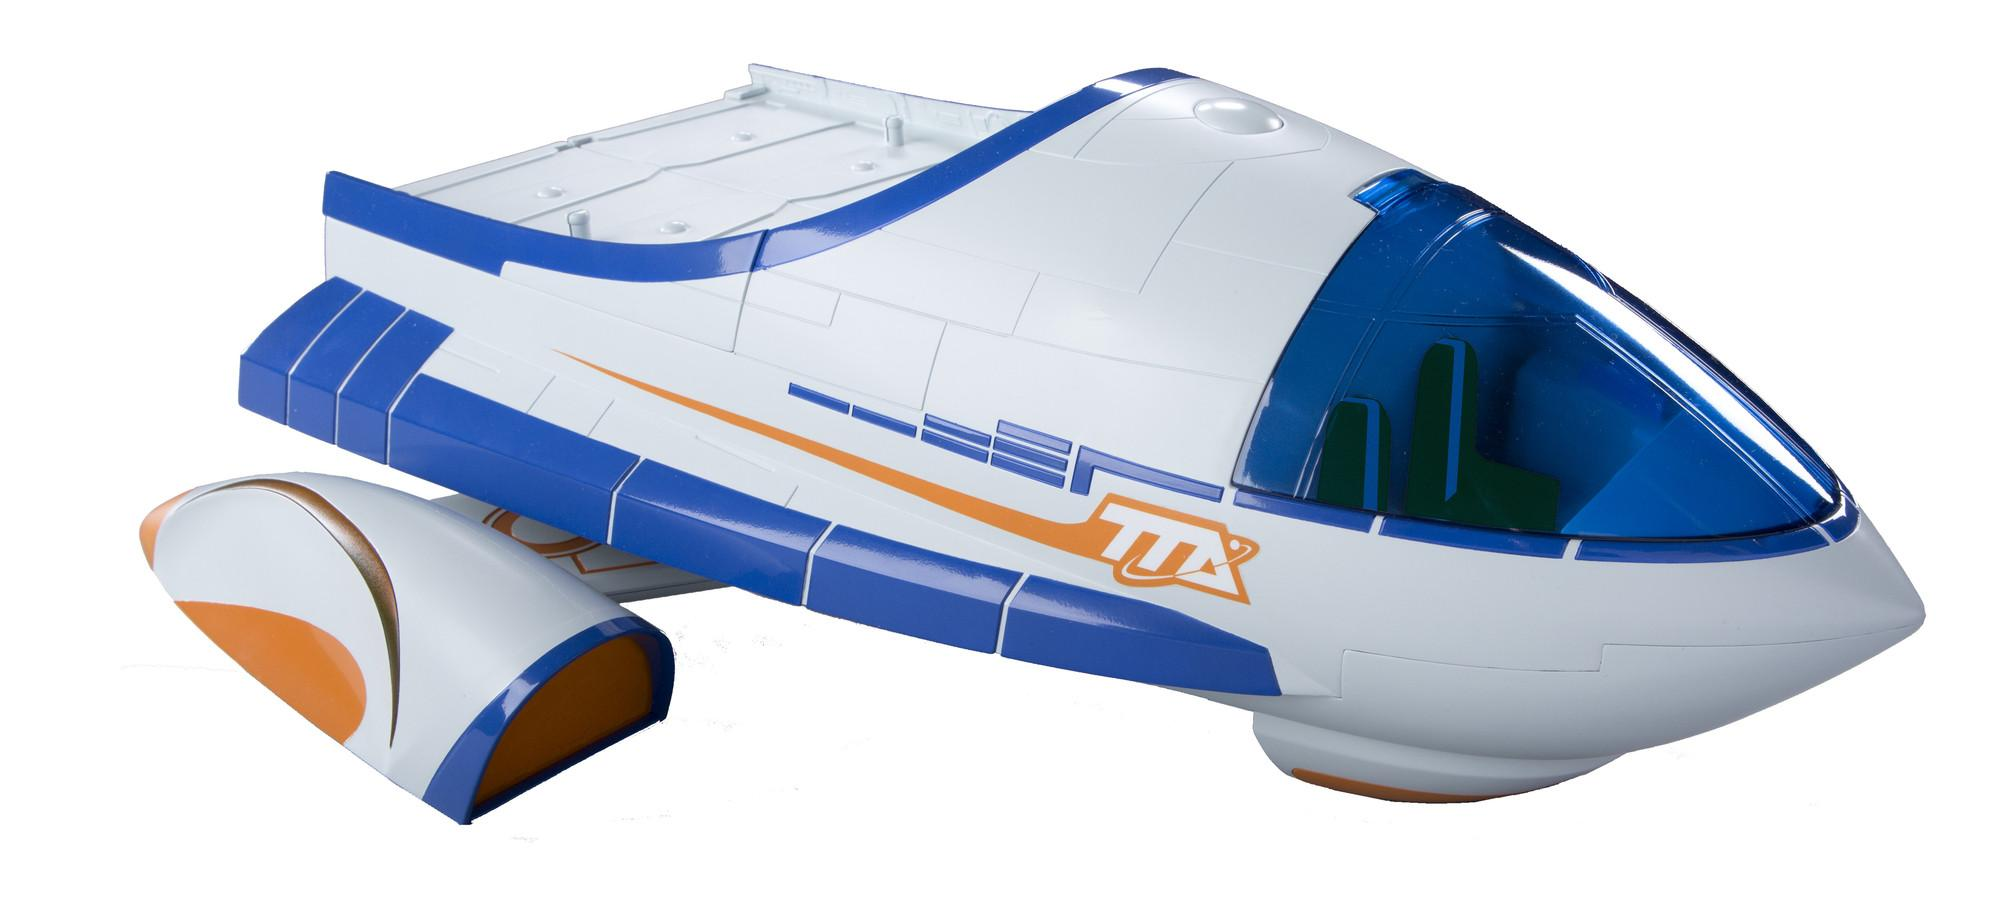 Spaceship Toys For Boys : Miles from tomorrowland stellosphere spaceship disney toys